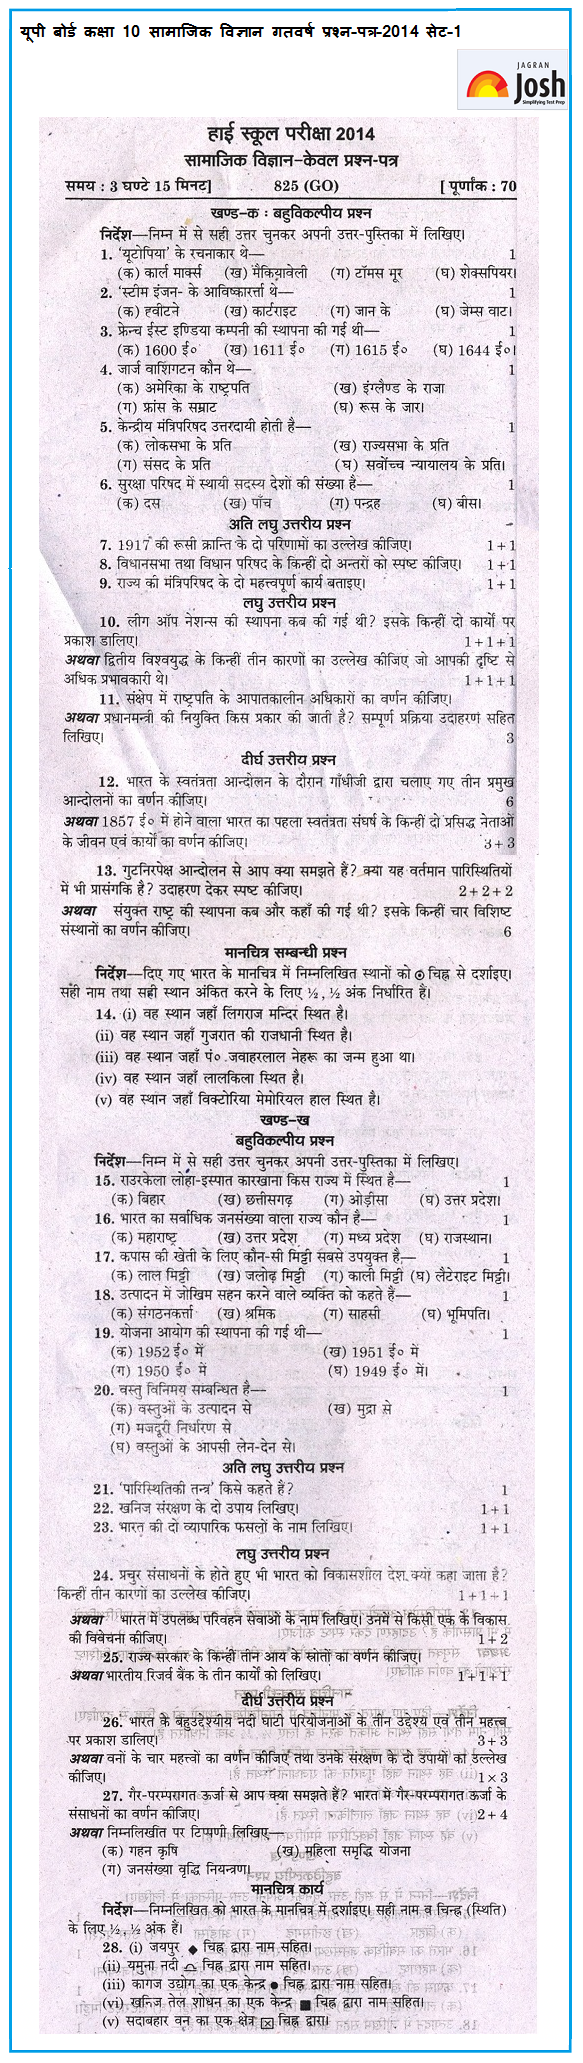 Up board class 10th social science question paper set 1 2014 up board malvernweather